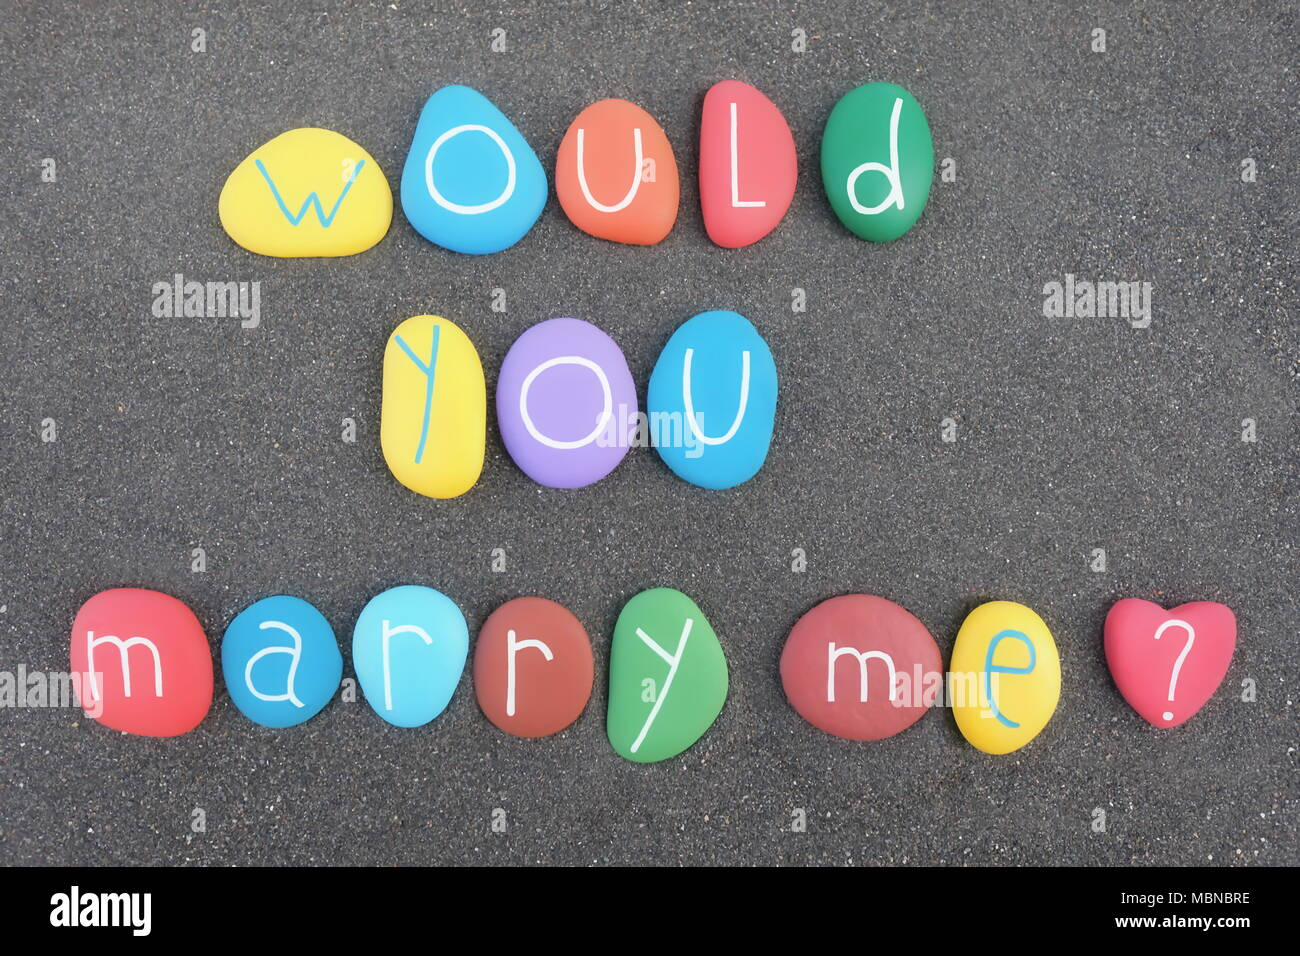 Would you marry me ? Multicolored painted stones phrase over black volcanic sand Stock Photo